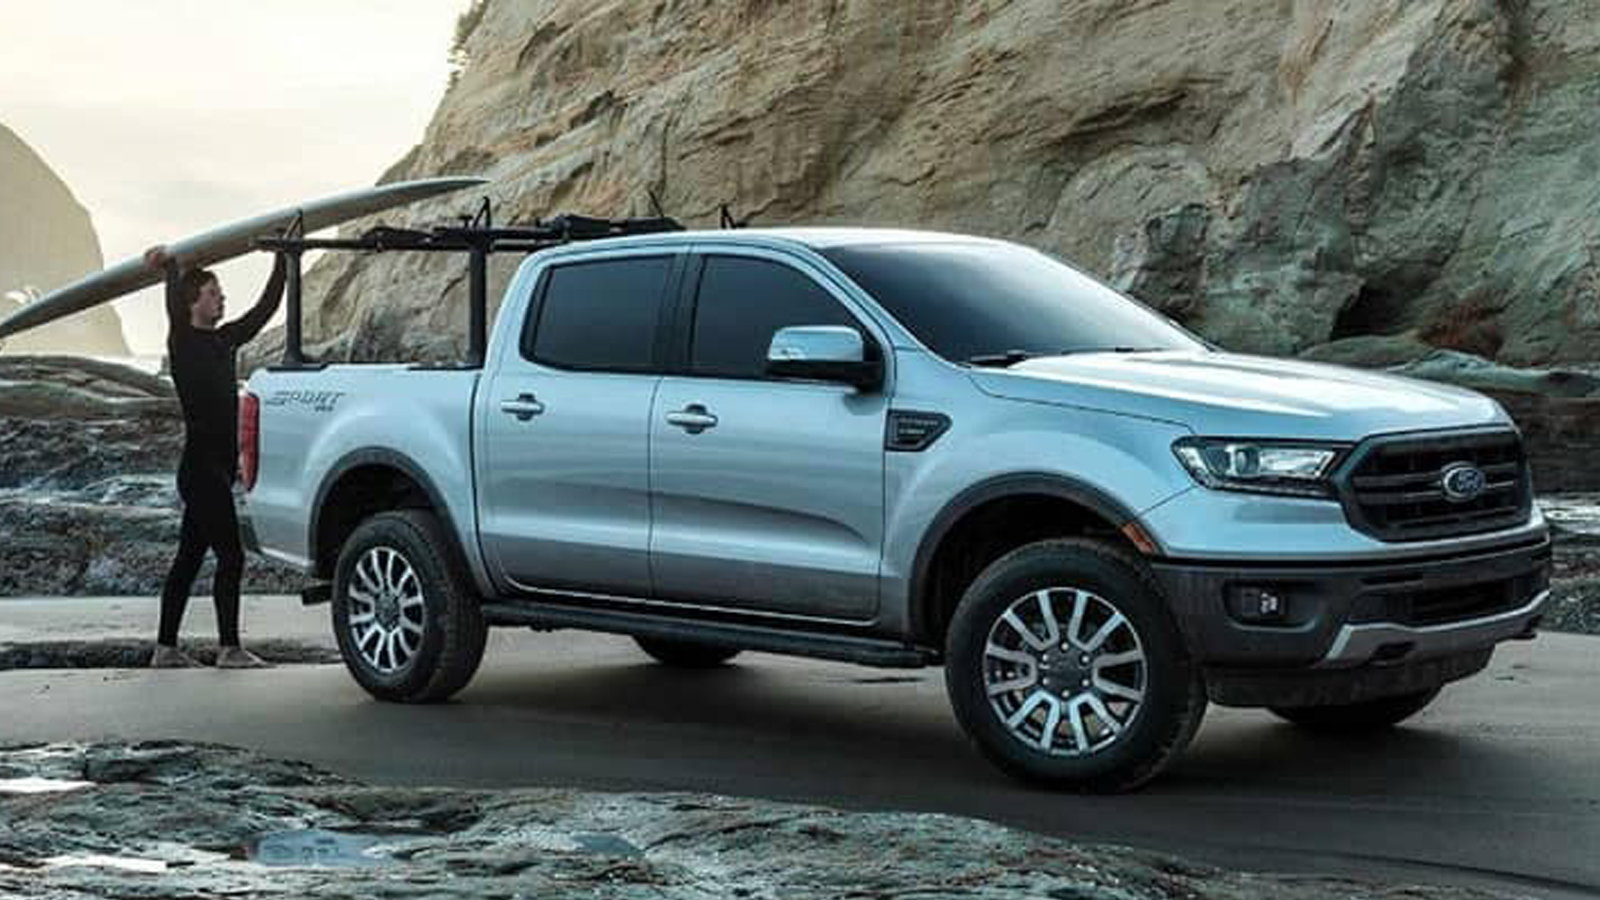 More on the 2019 Ranger Towing and Power Specs